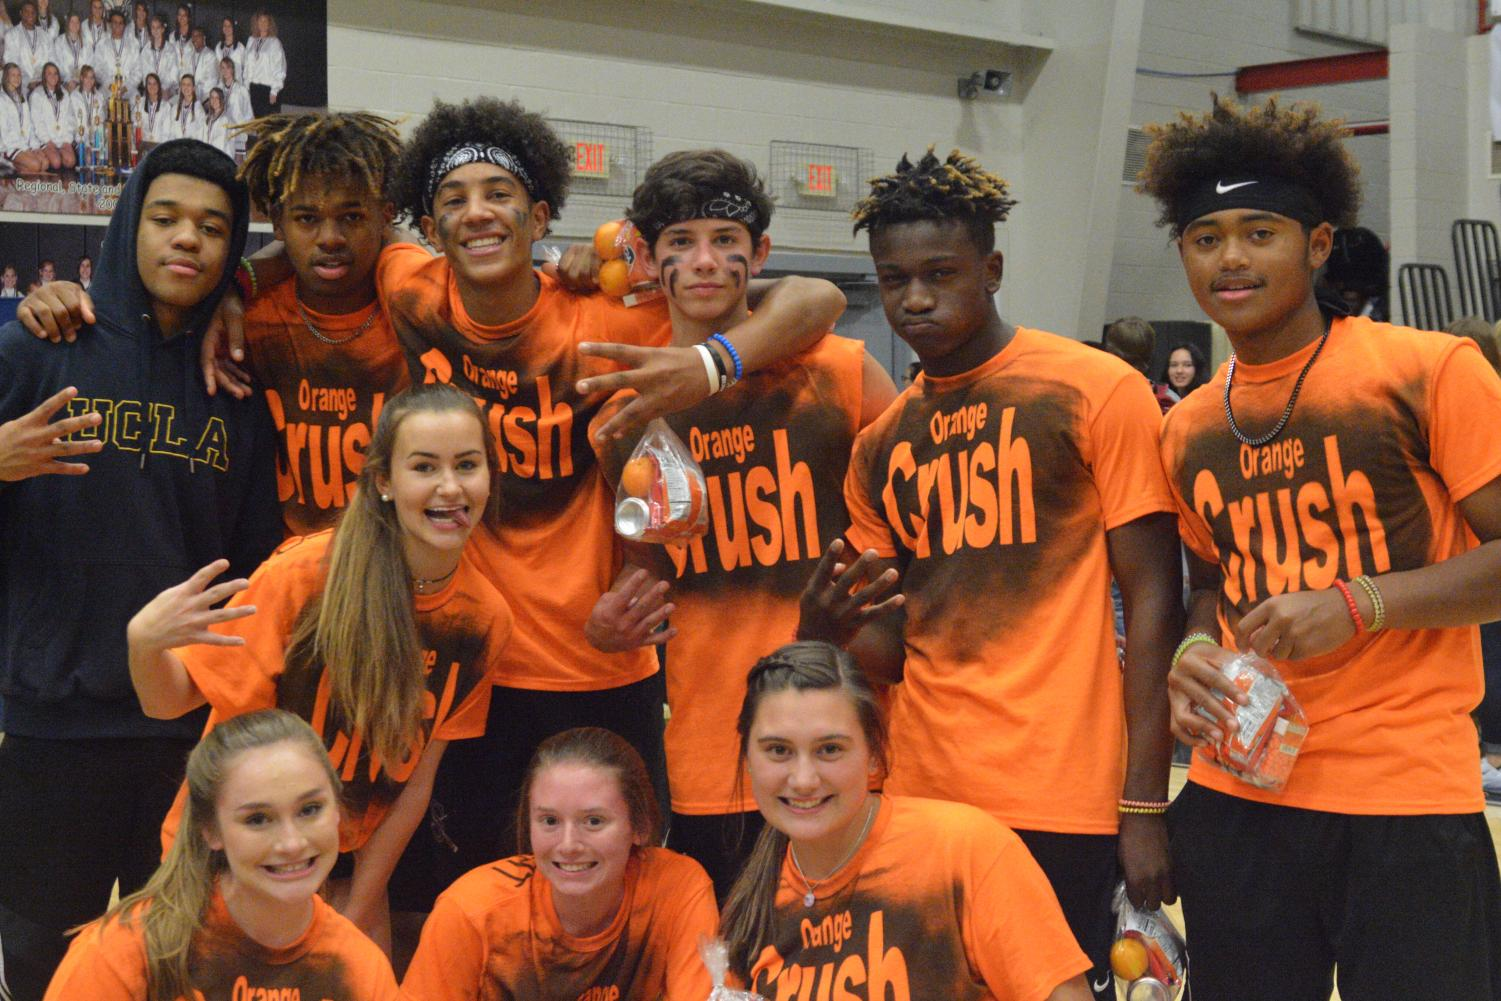 Orange Crush, the winning team, poses for a quick photo after the tournament.